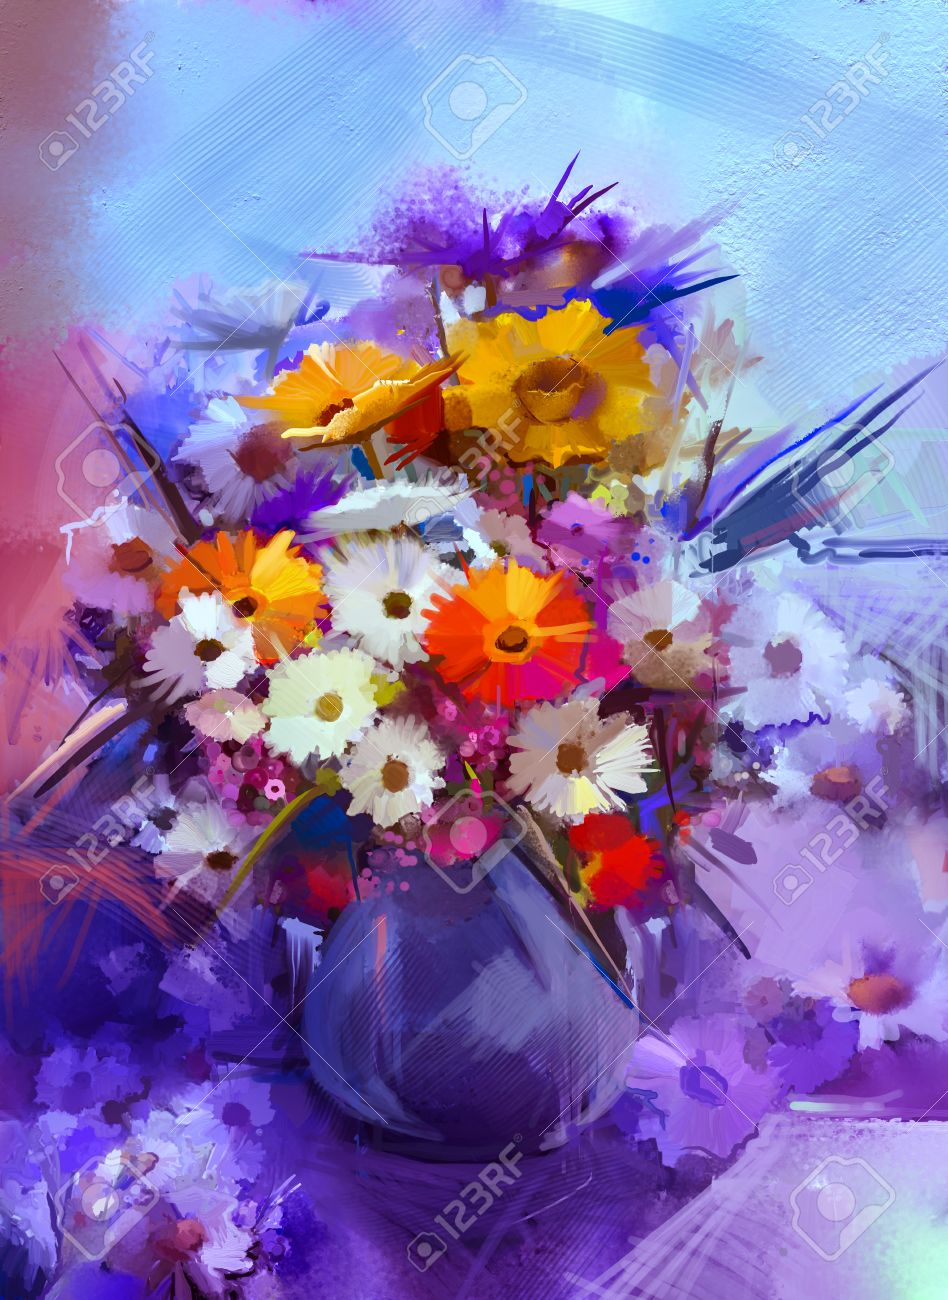 Oil Painting Flowers In Vase Hand Paint Still Life Bouquet Of WhiteYellow And